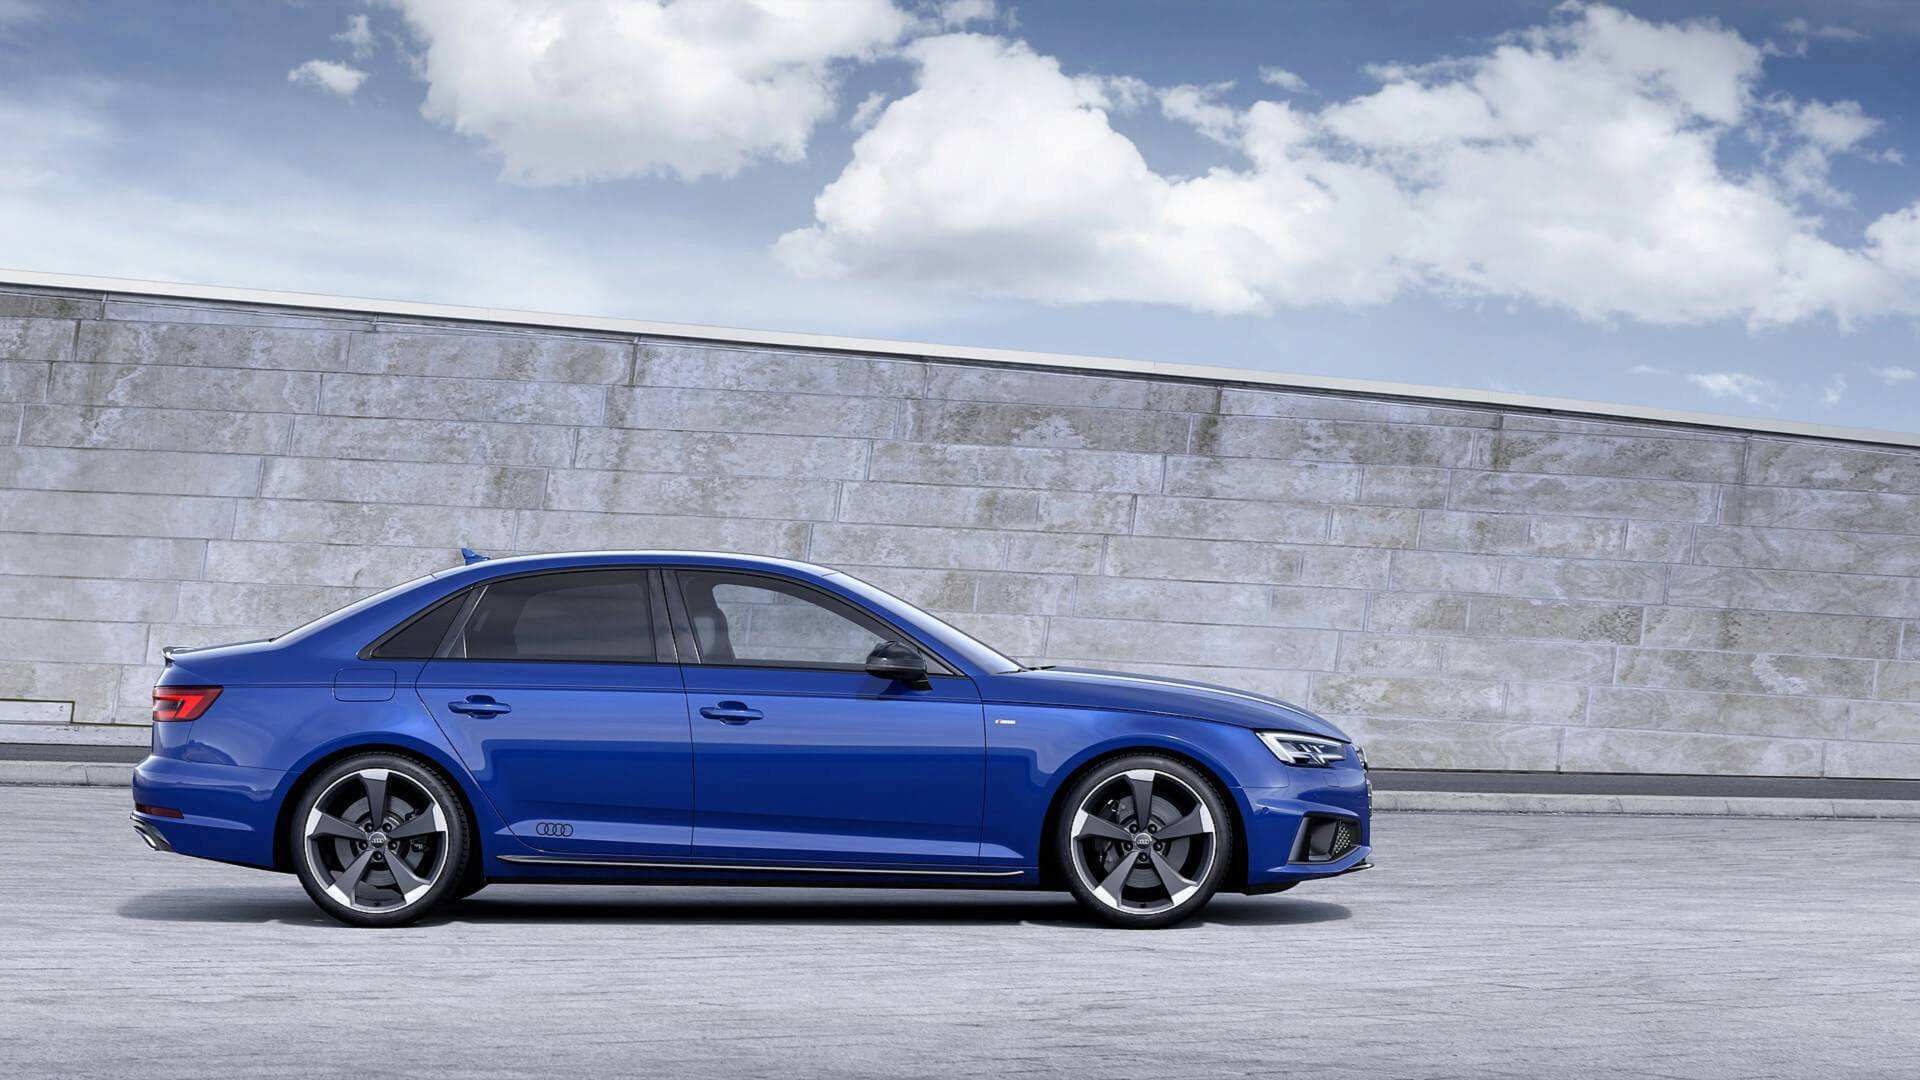 97 Concept of 2019 Audi A4 Images with 2019 Audi A4